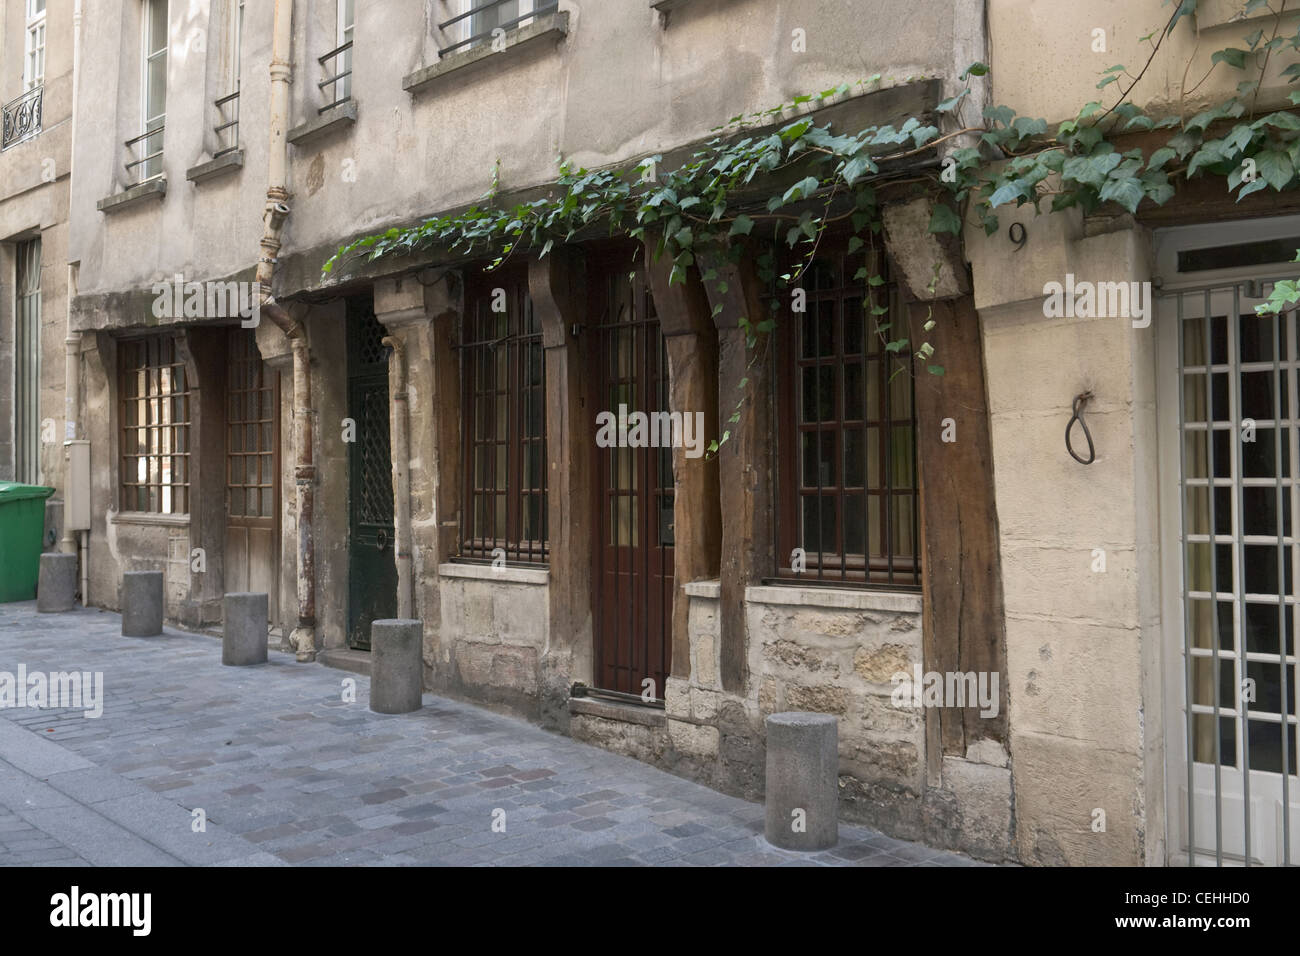 Old building with wooden beams and columns, Rue de Lanneau, Paris, France Stock Photo